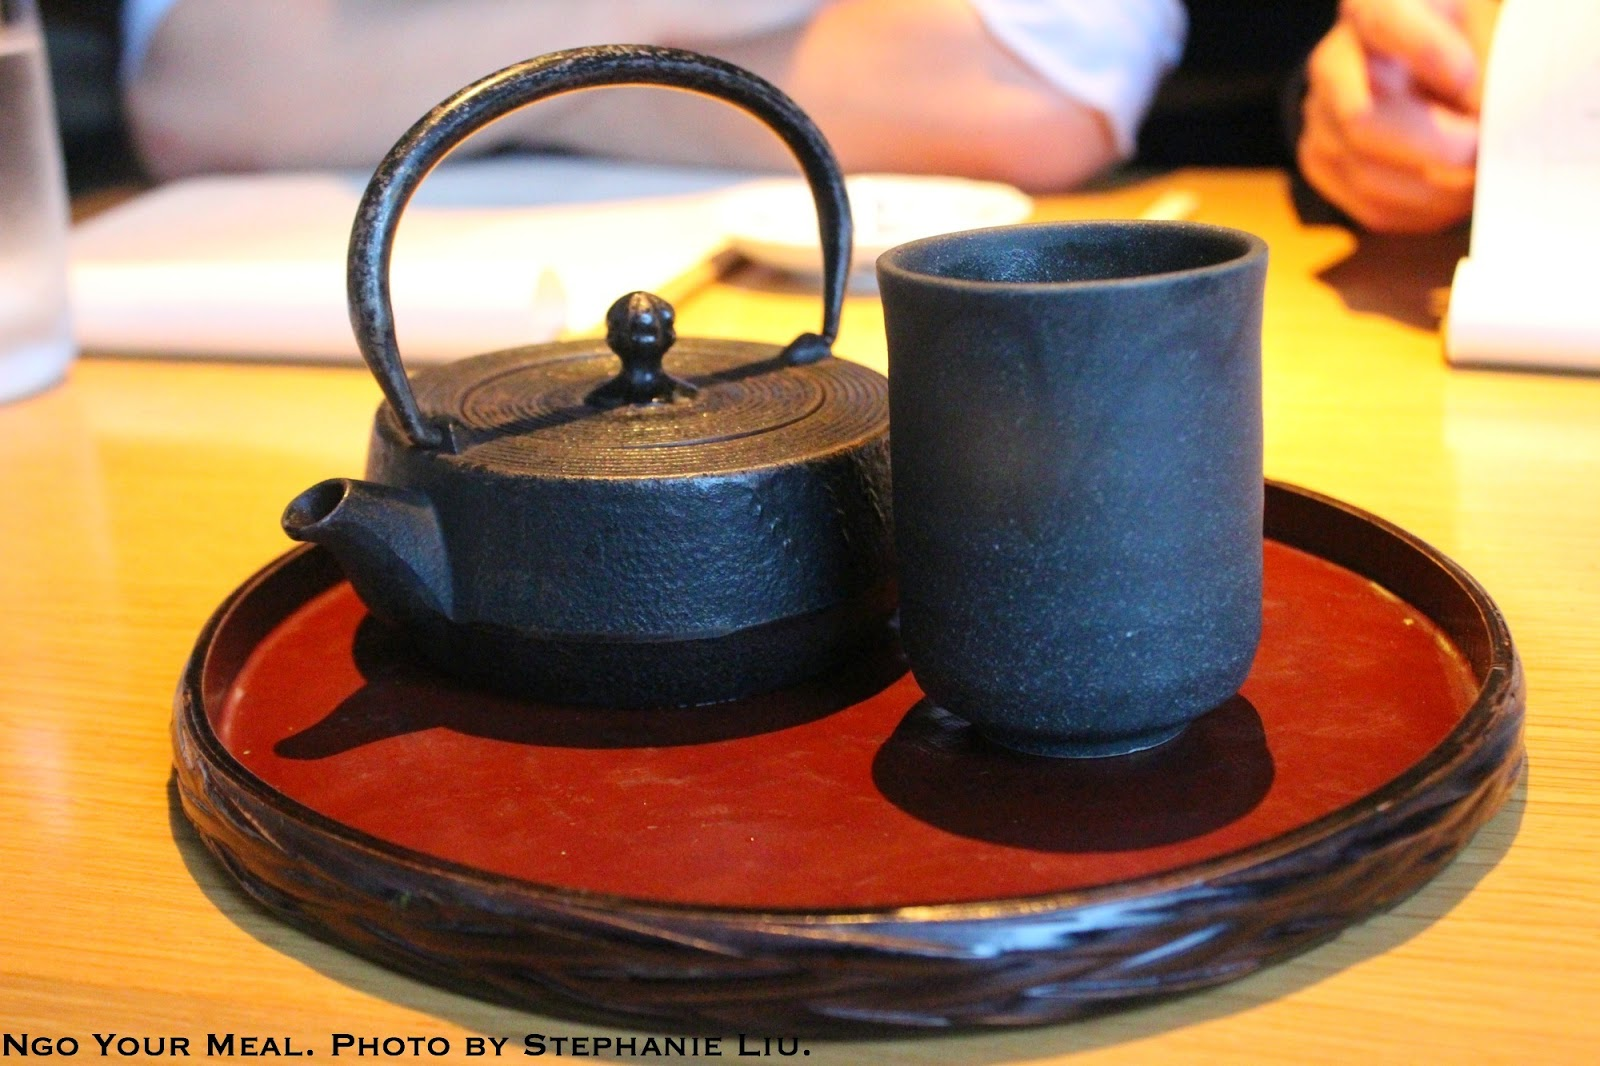 Roasted Rice Tea at EN Japanese Brasserie